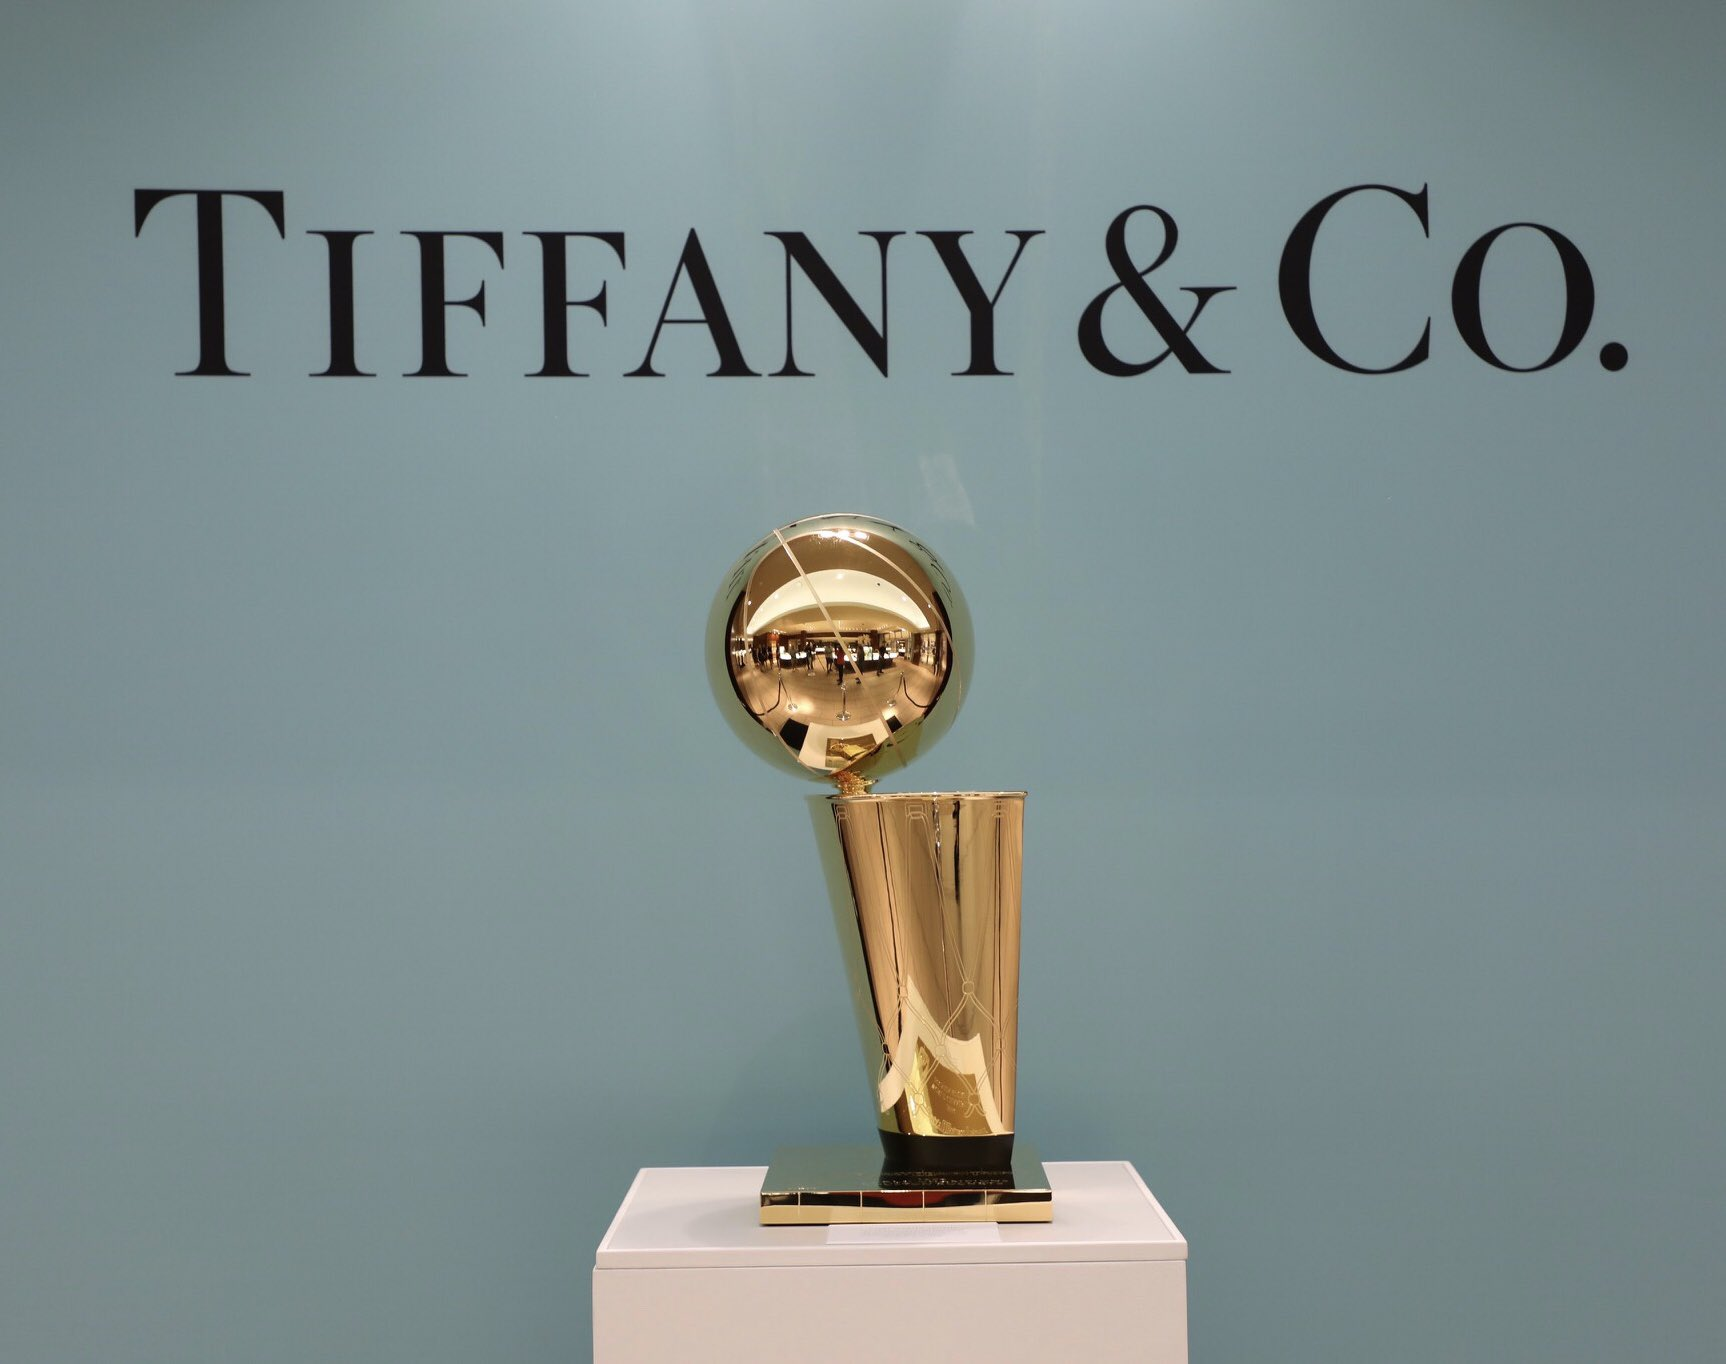 We're at @TiffanyAndCo for the unveiling of the #Rockets '94 & '95 championship trophies. ���� https://t.co/xFfdl8C2Kq